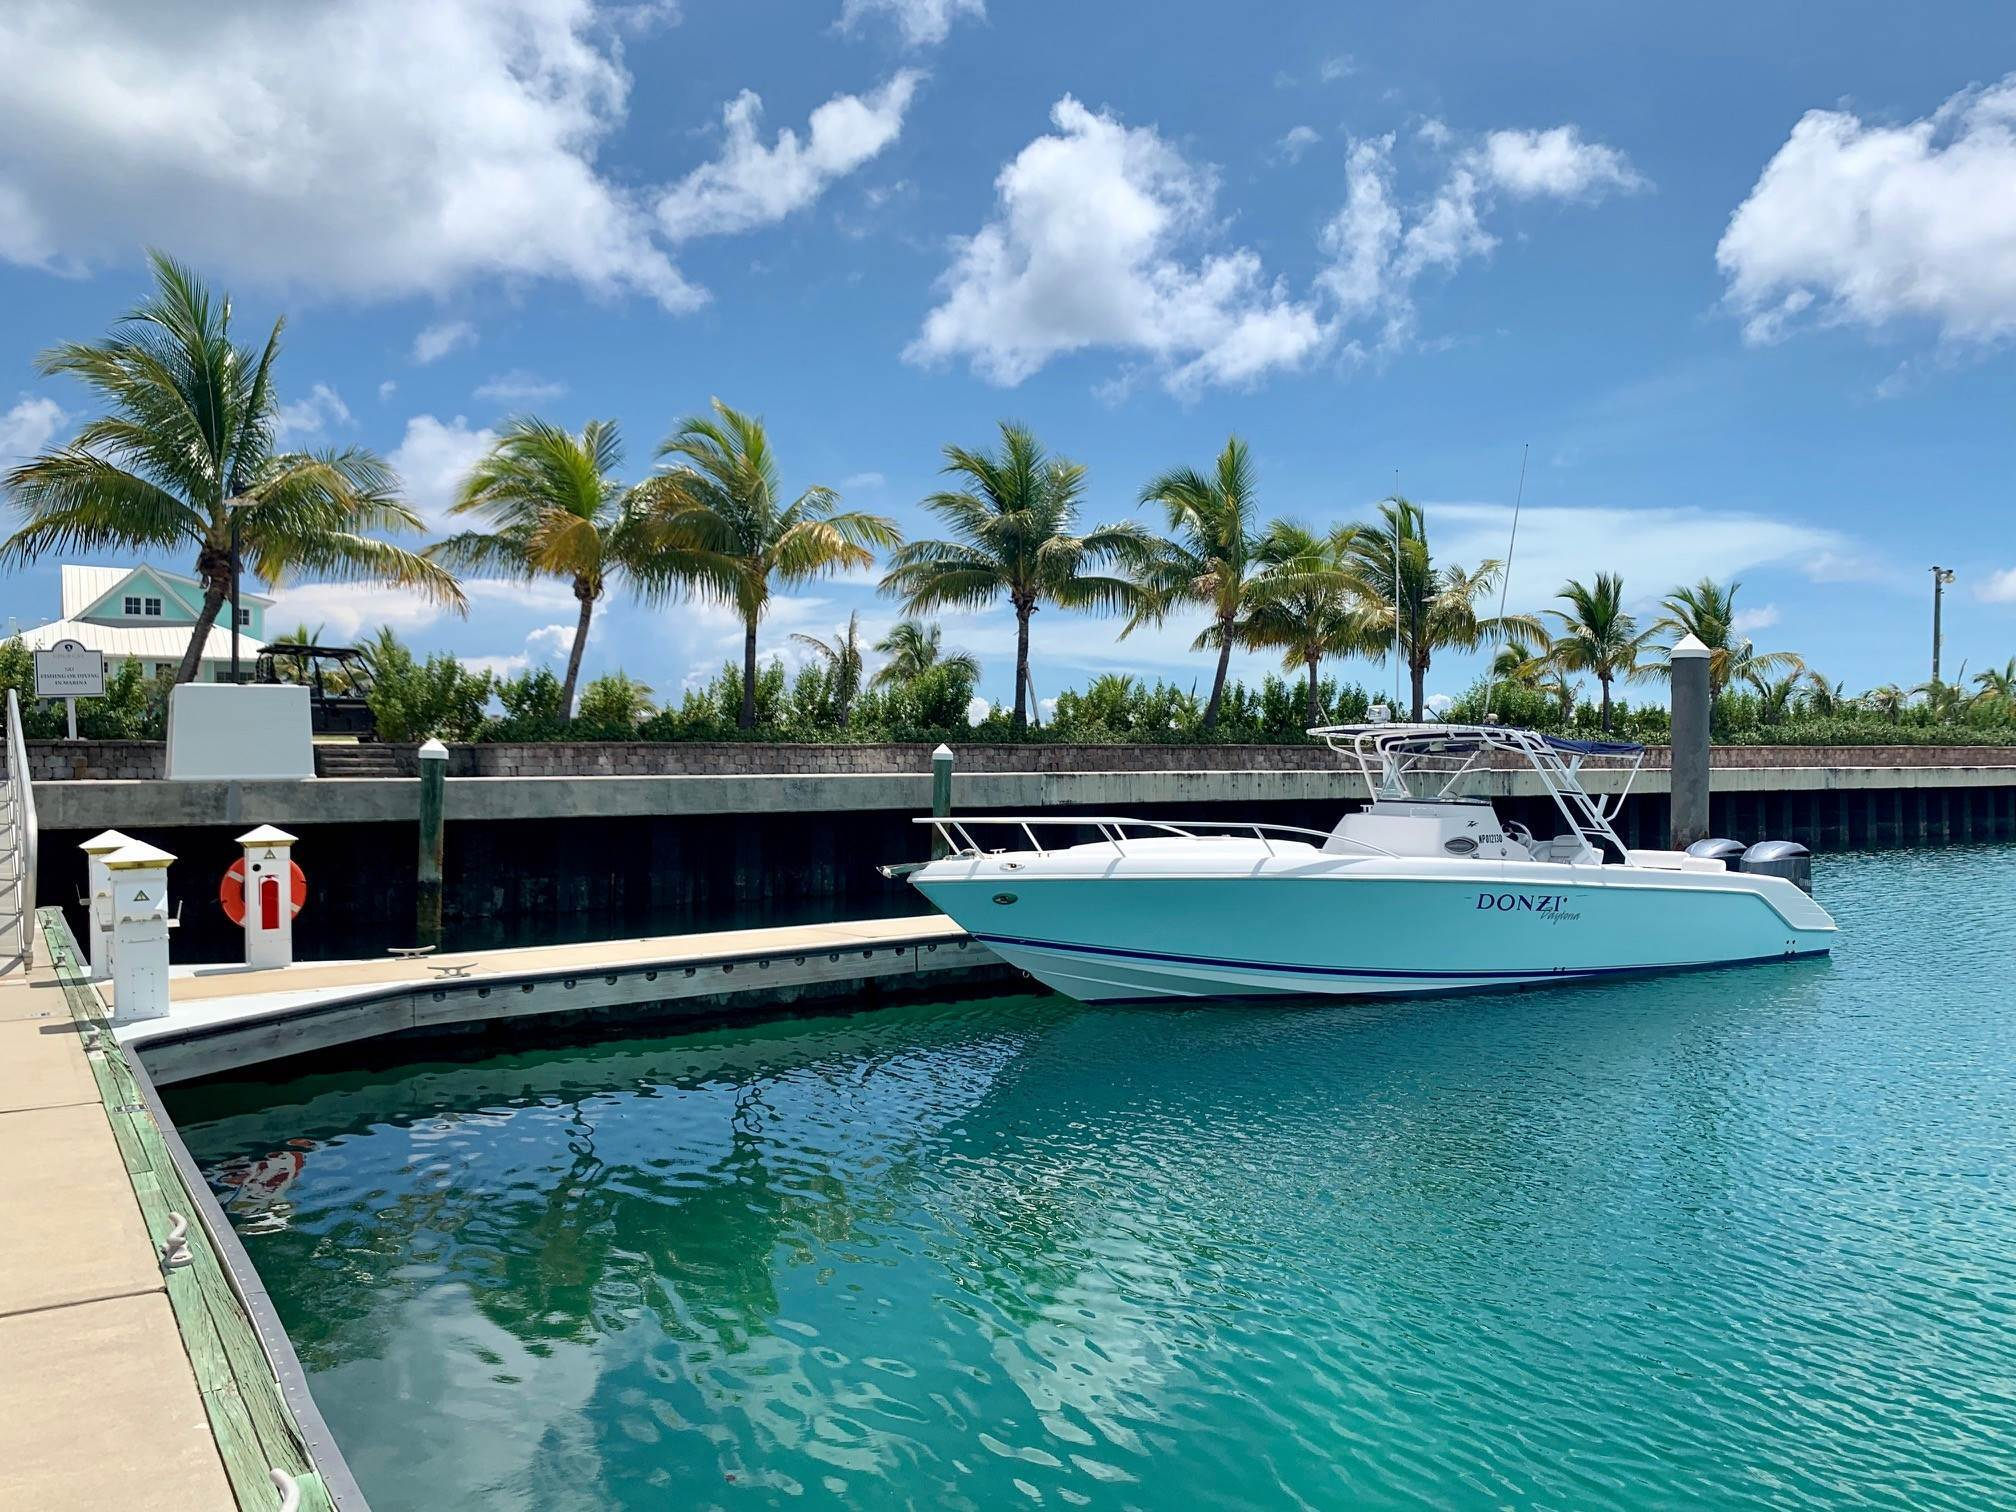 6. Otro por un Venta en Dock Slip #322 Chub Cay Marina, The Berry Islands - MLS 38791 Chub Cay, Islas Berry, Bahamas